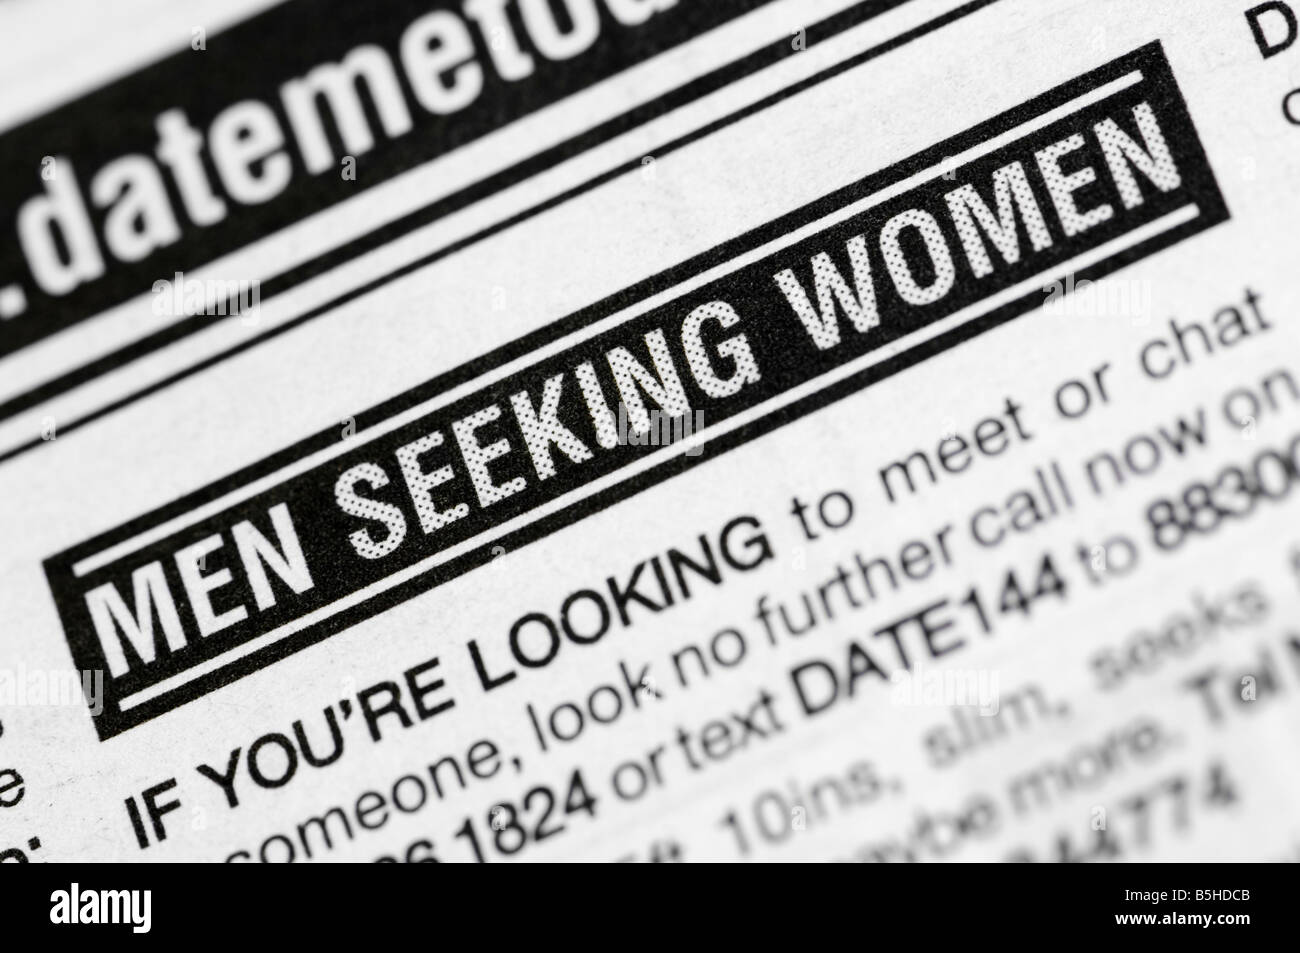 Women seeking men missouri